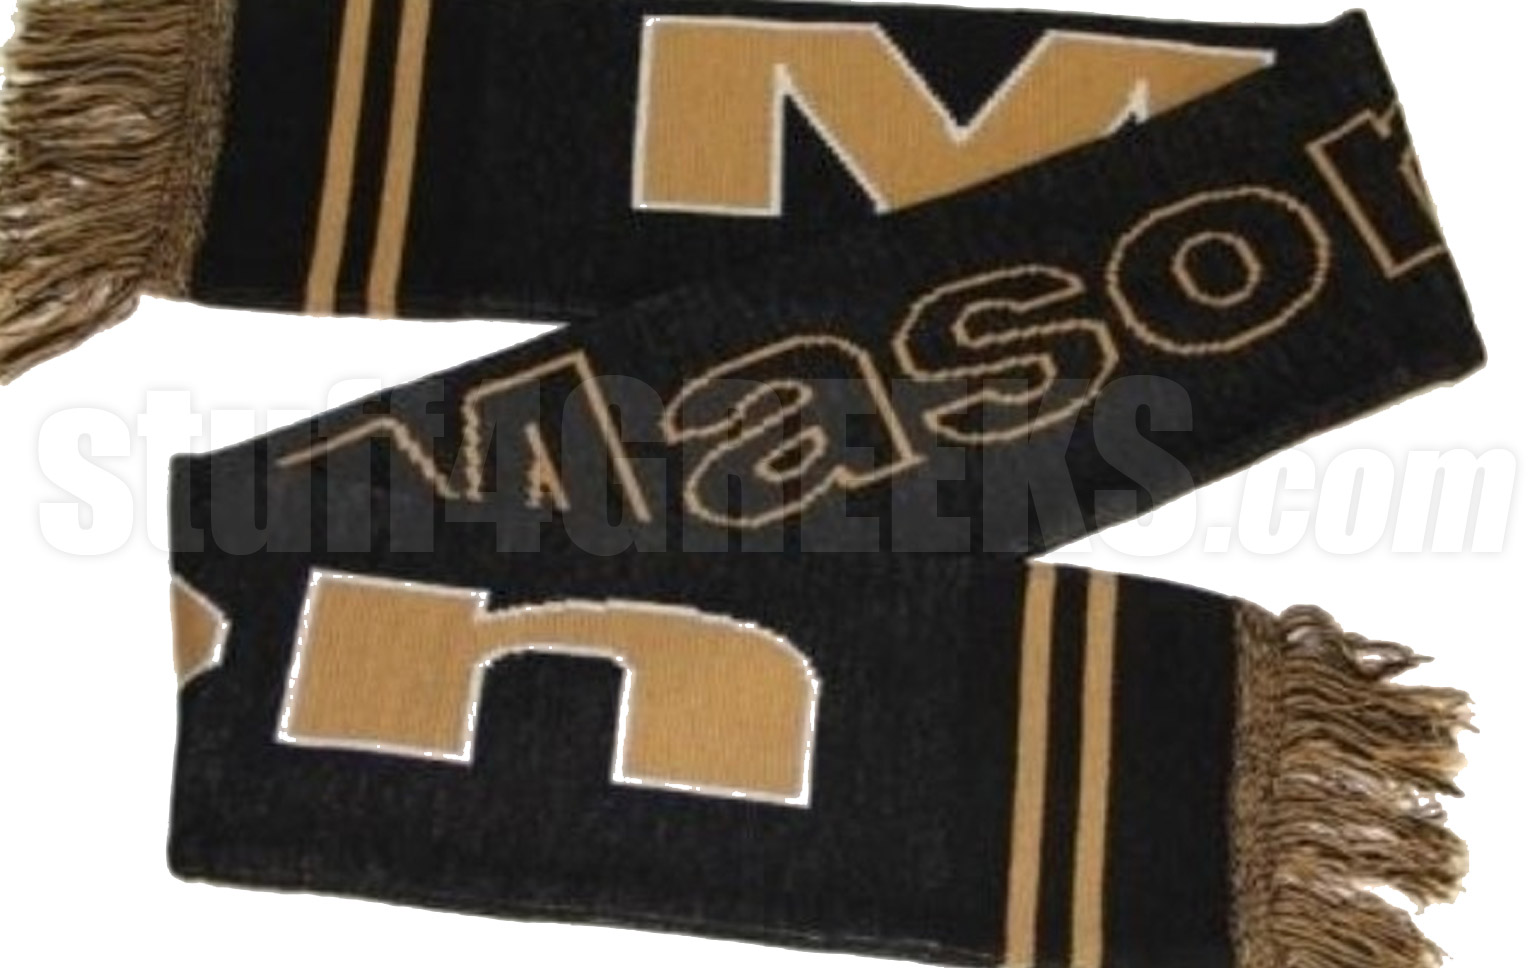 Mason Scarf with Organization Name (SAV)